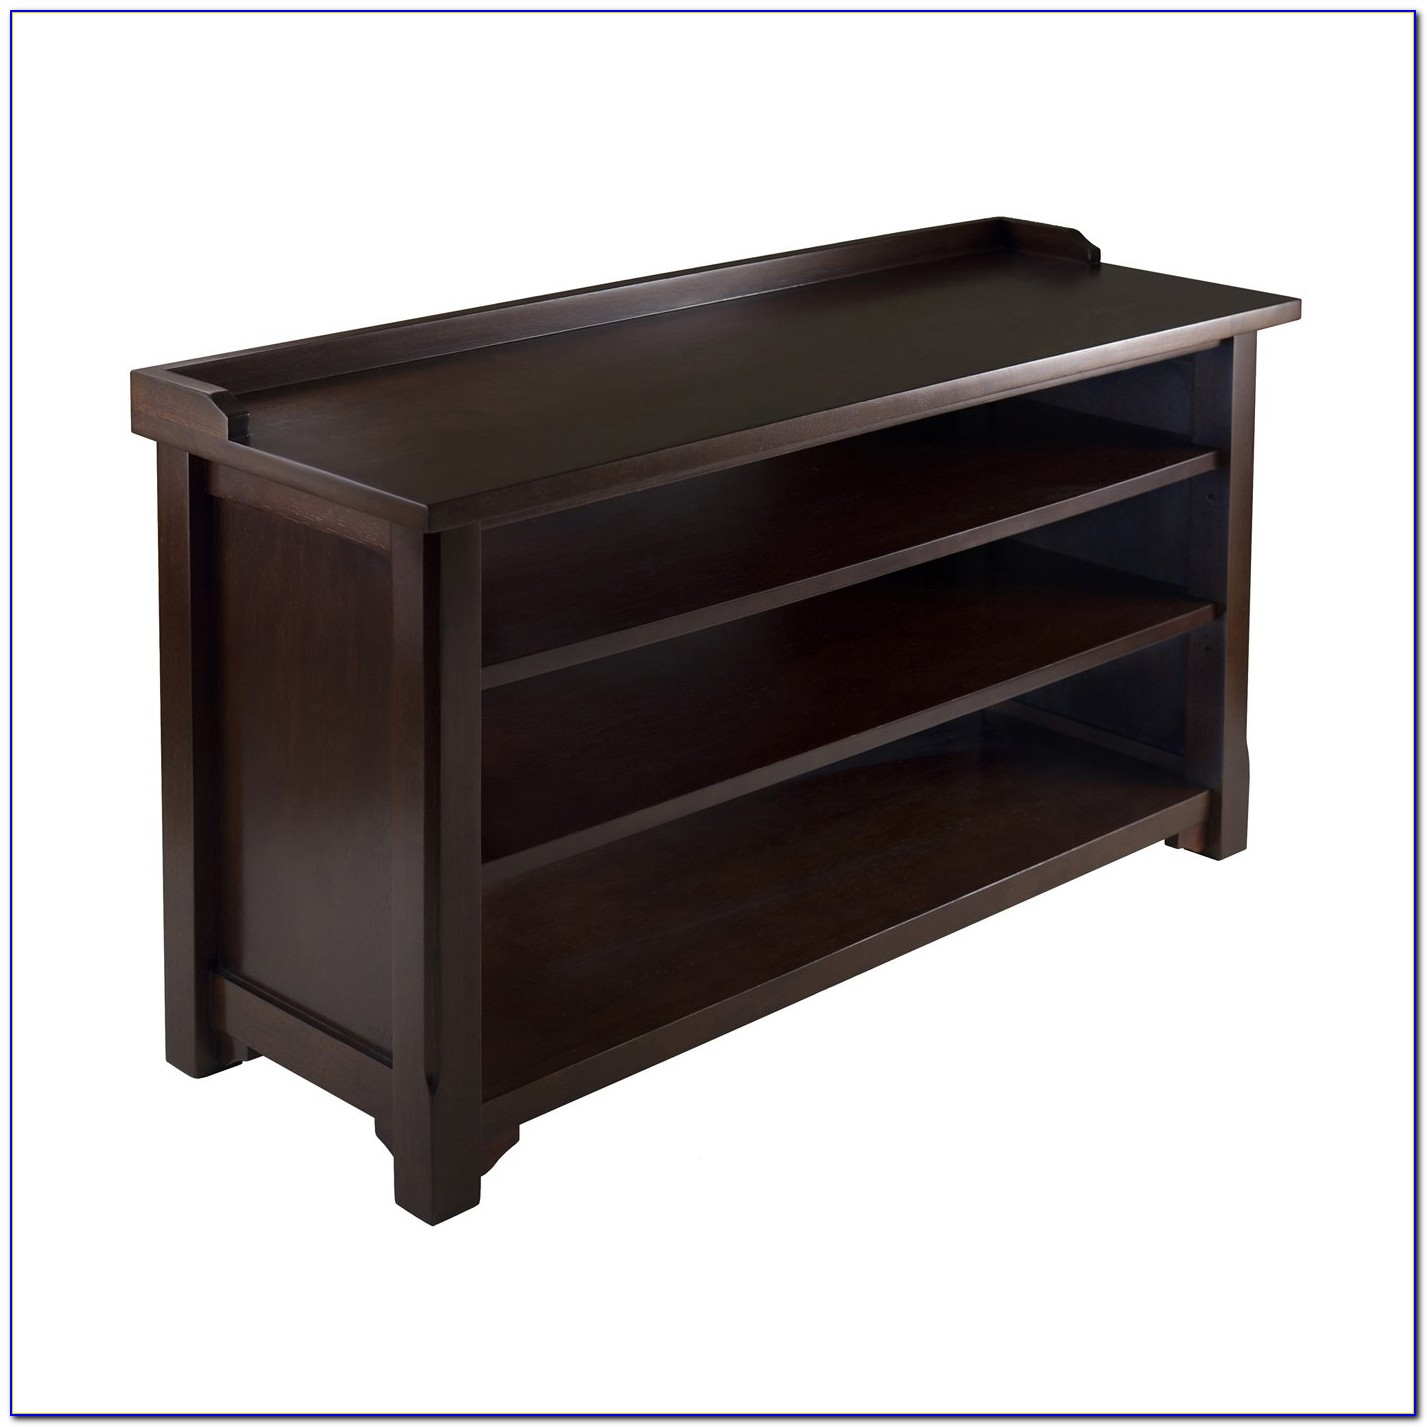 Winsome Wood Milan Wood Storage Bench